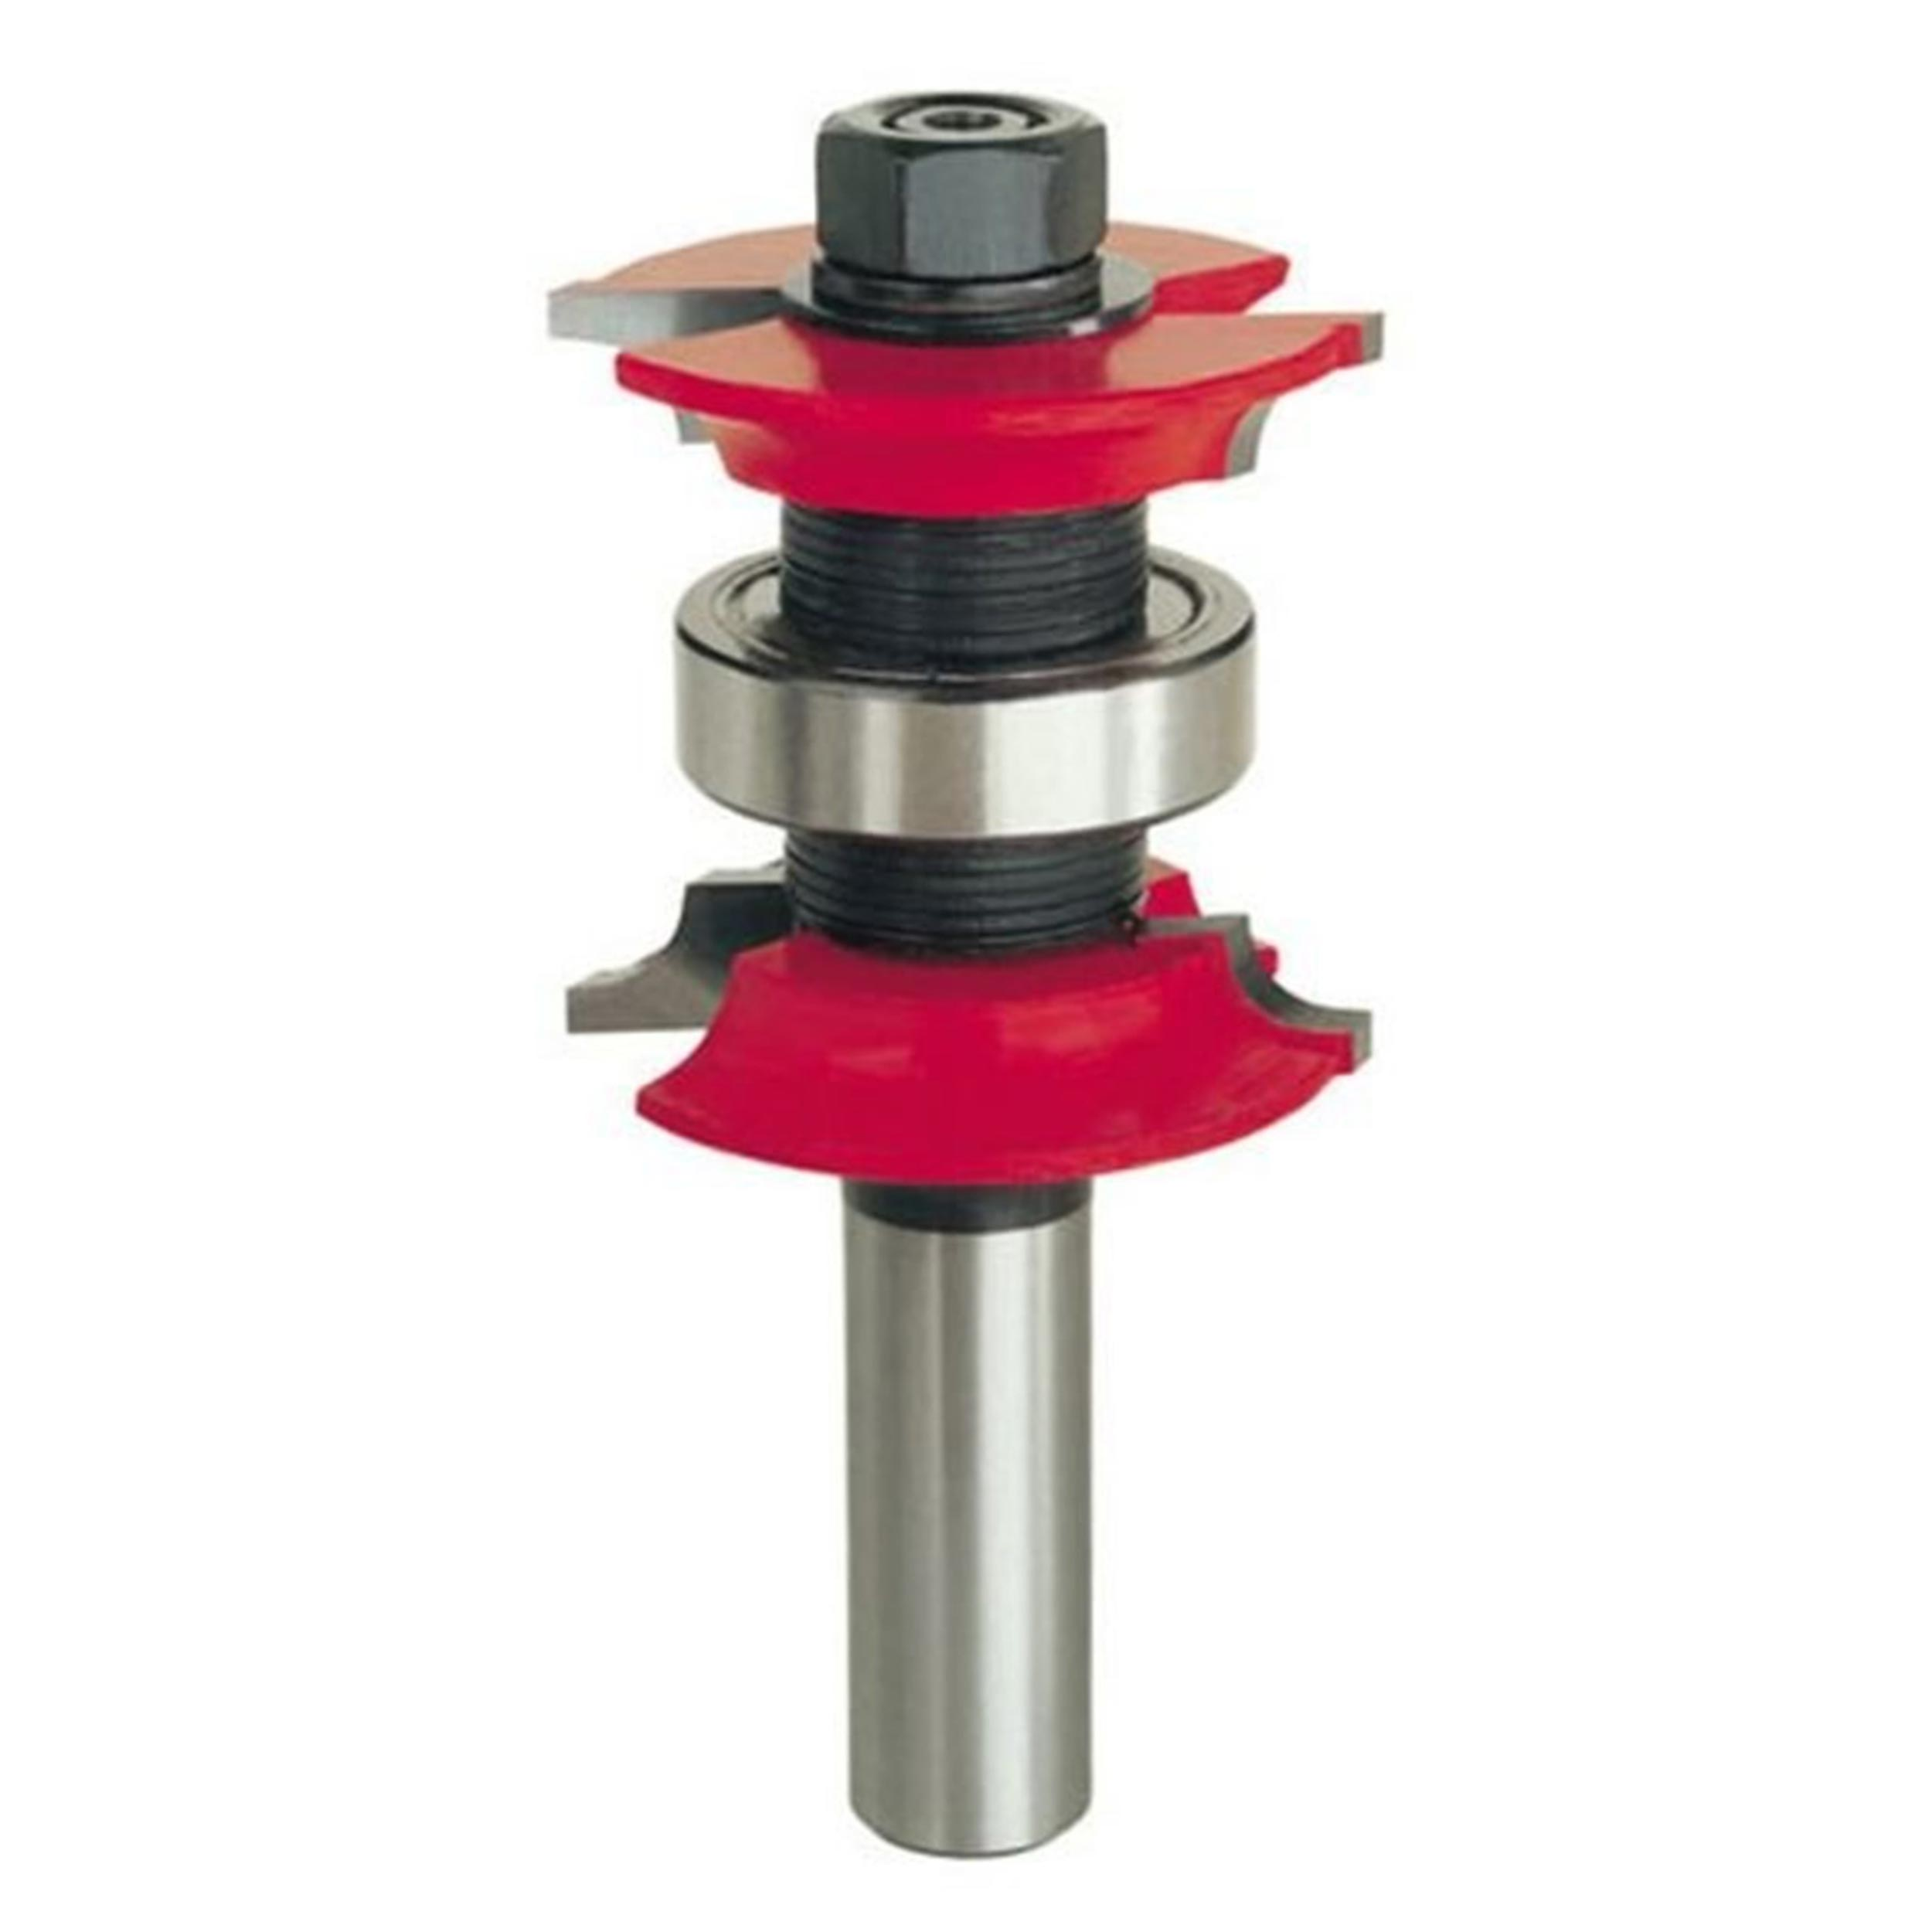 99-028 Variable Corner Round Router Bit 1/2